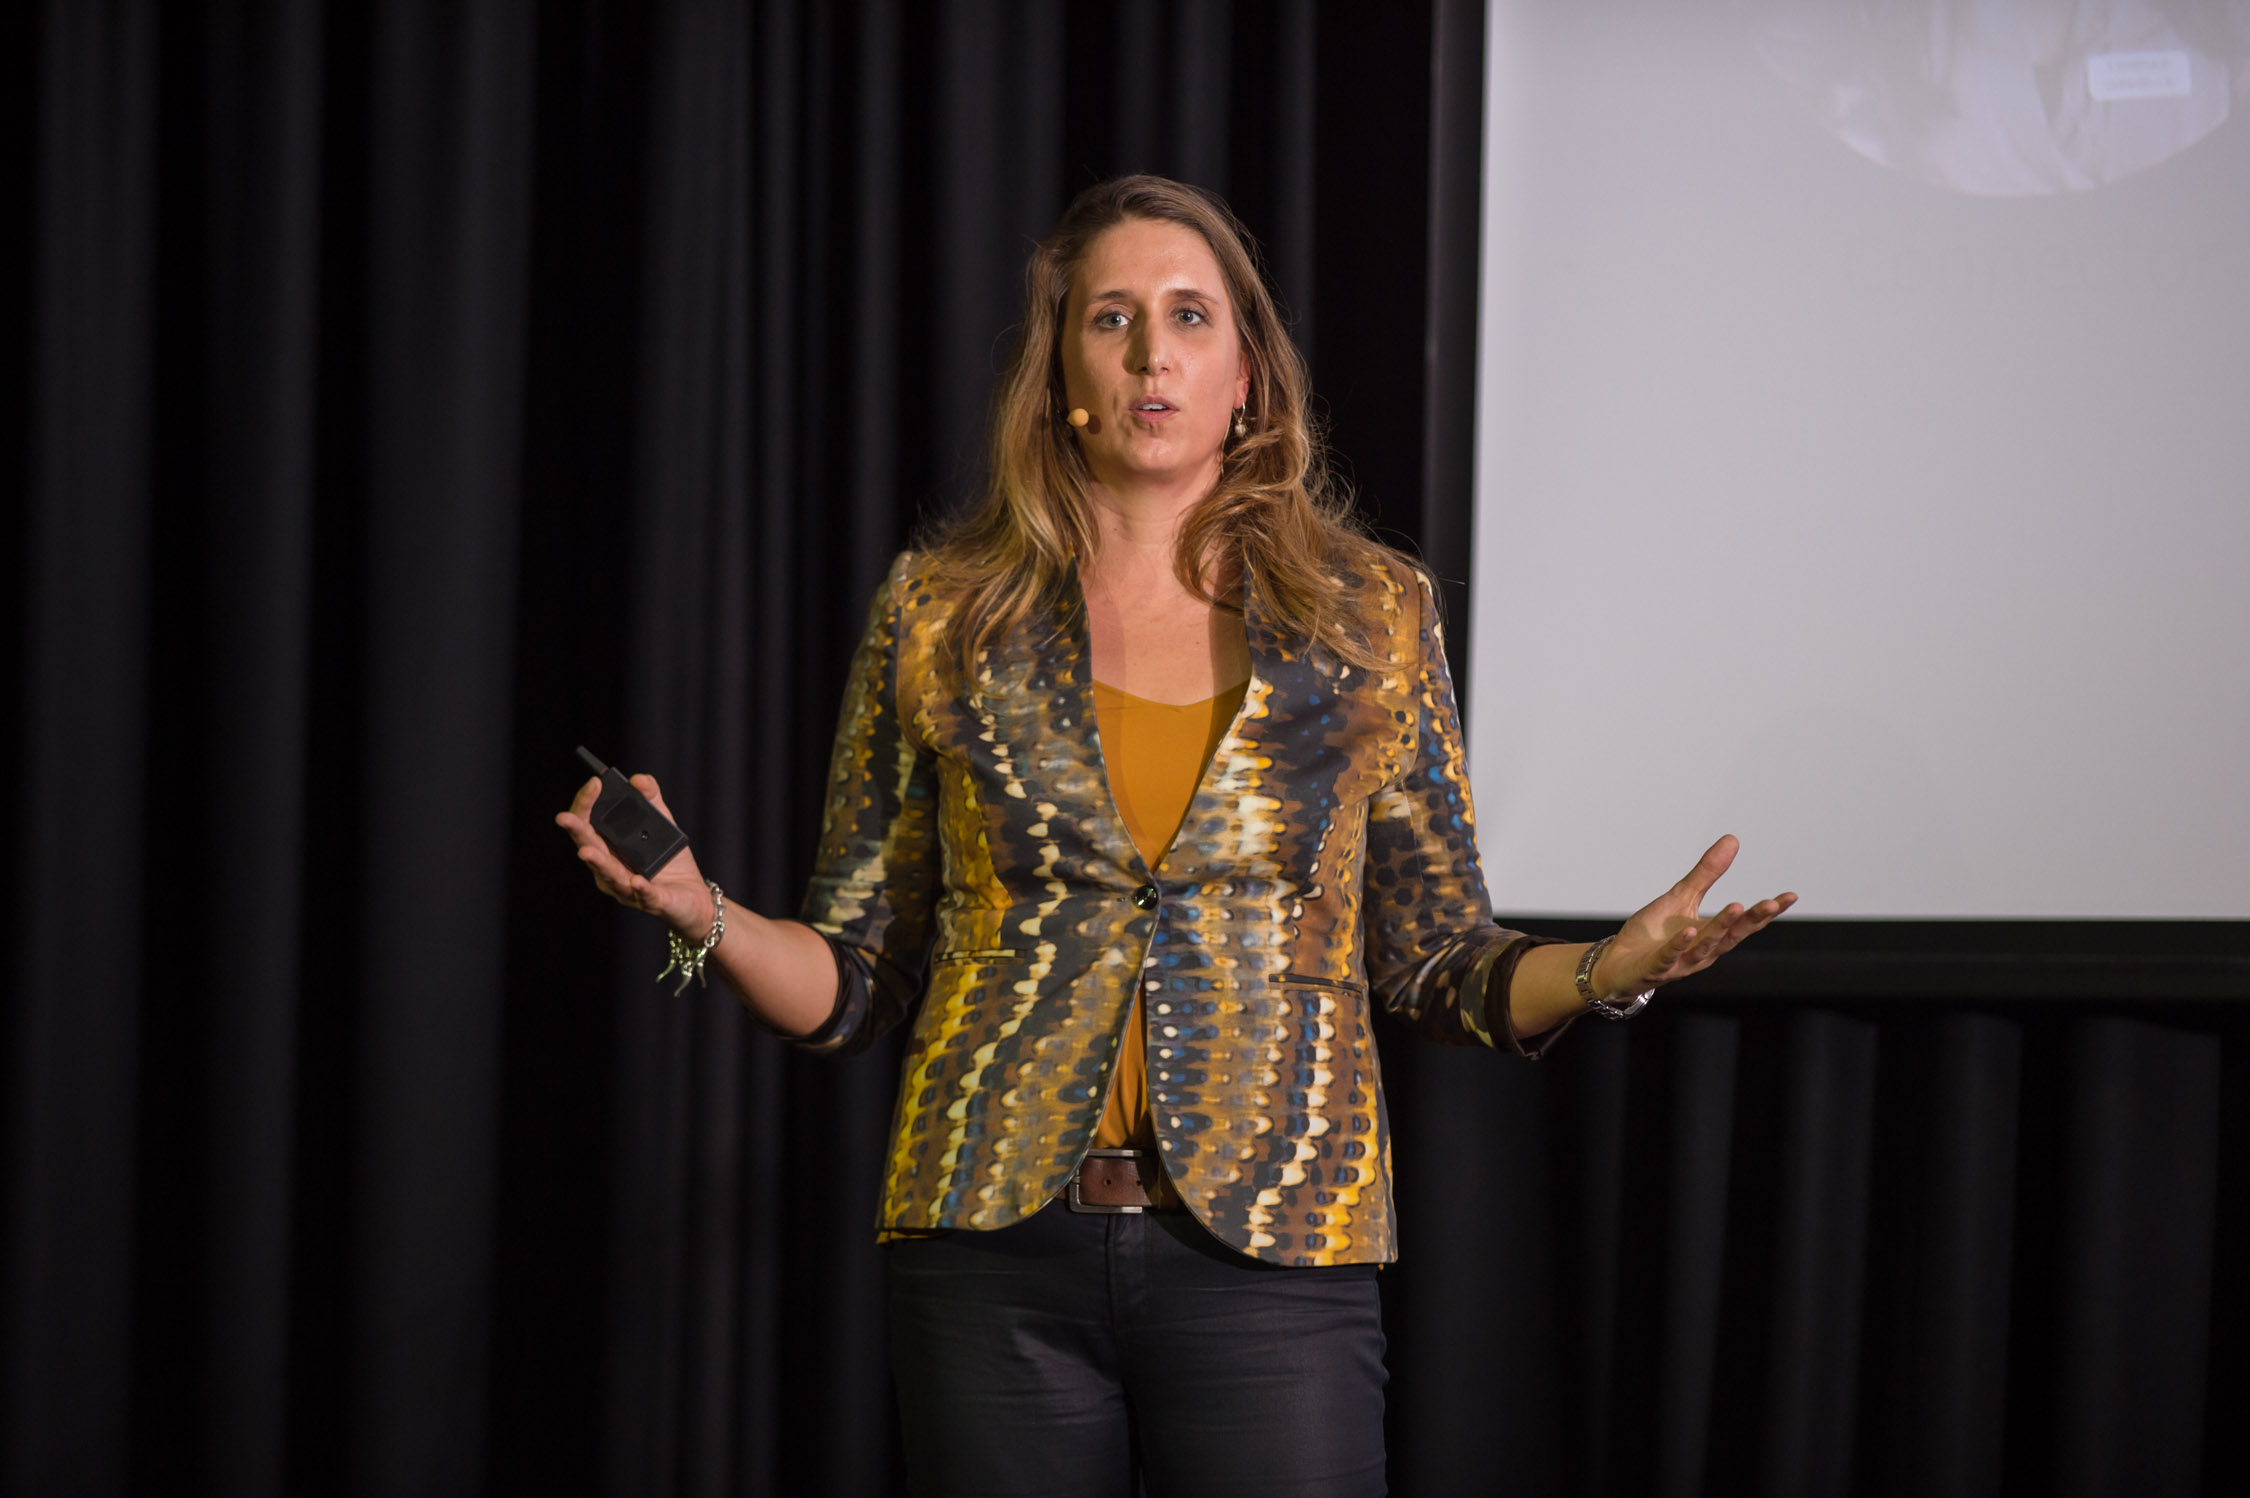 how events can leverage social influencers - - Carolyn Miller, Managing Director, The Honeycomb Effect